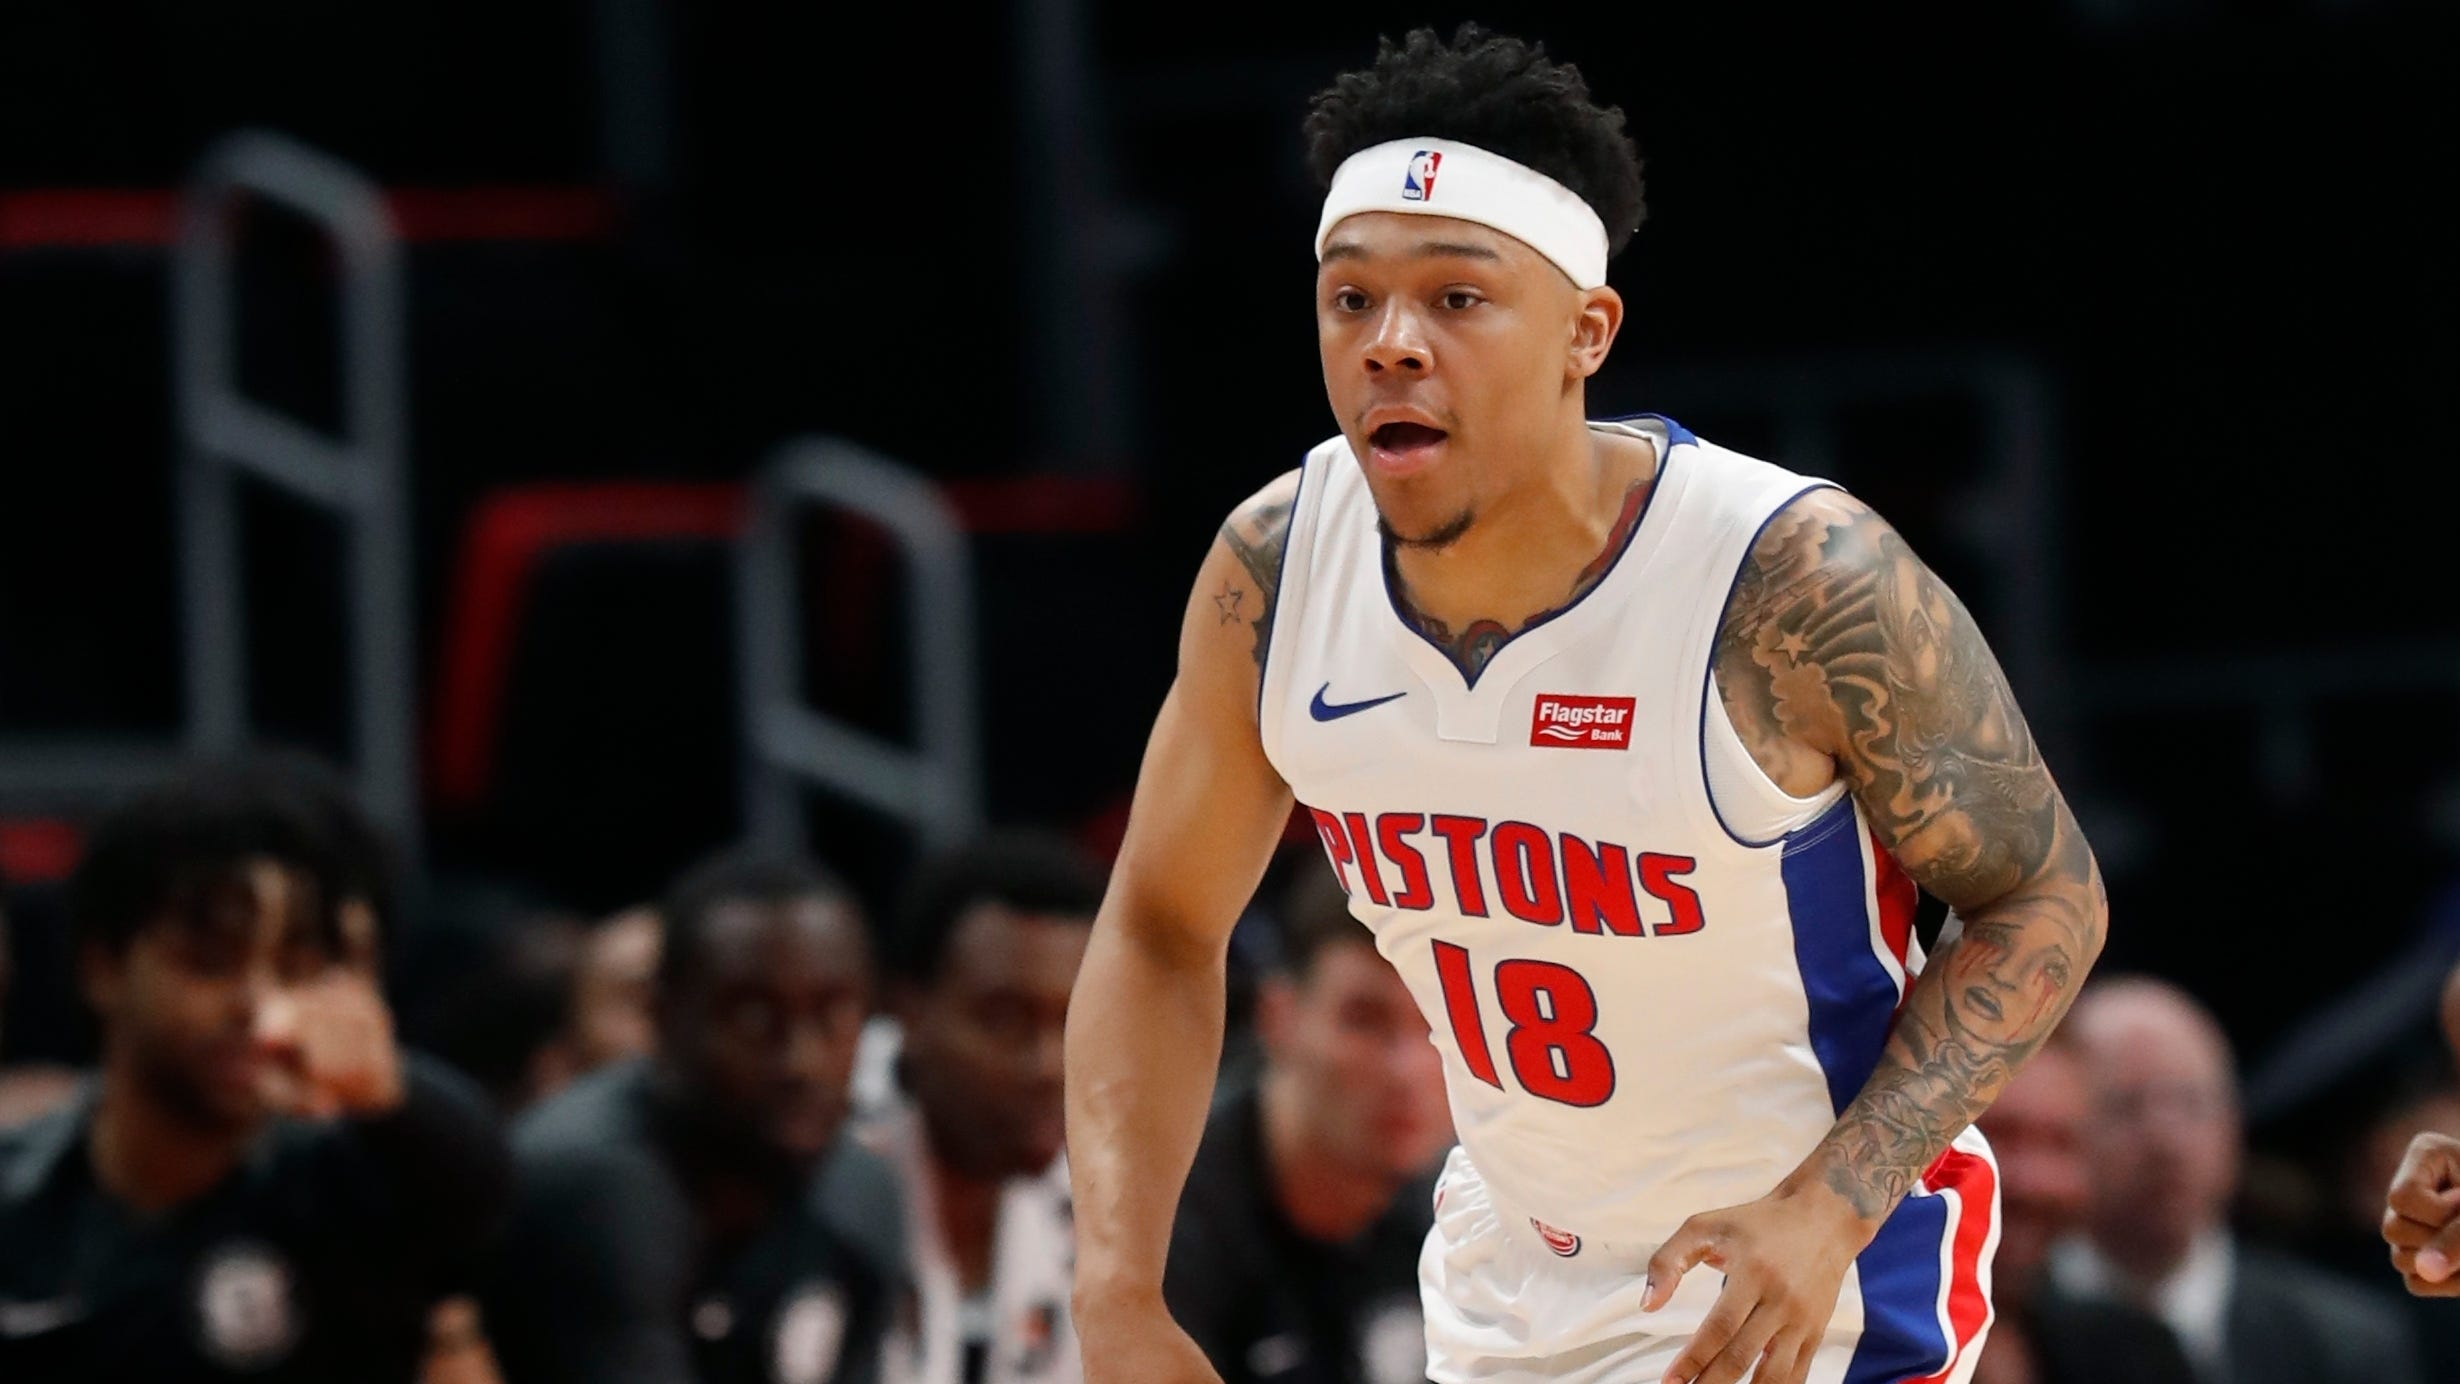 Detroit Pistons guard Zach Lofton brings the ball up court during the second half of an NBA preseason basketball game against the Brooklyn Nets on Oct. 8.